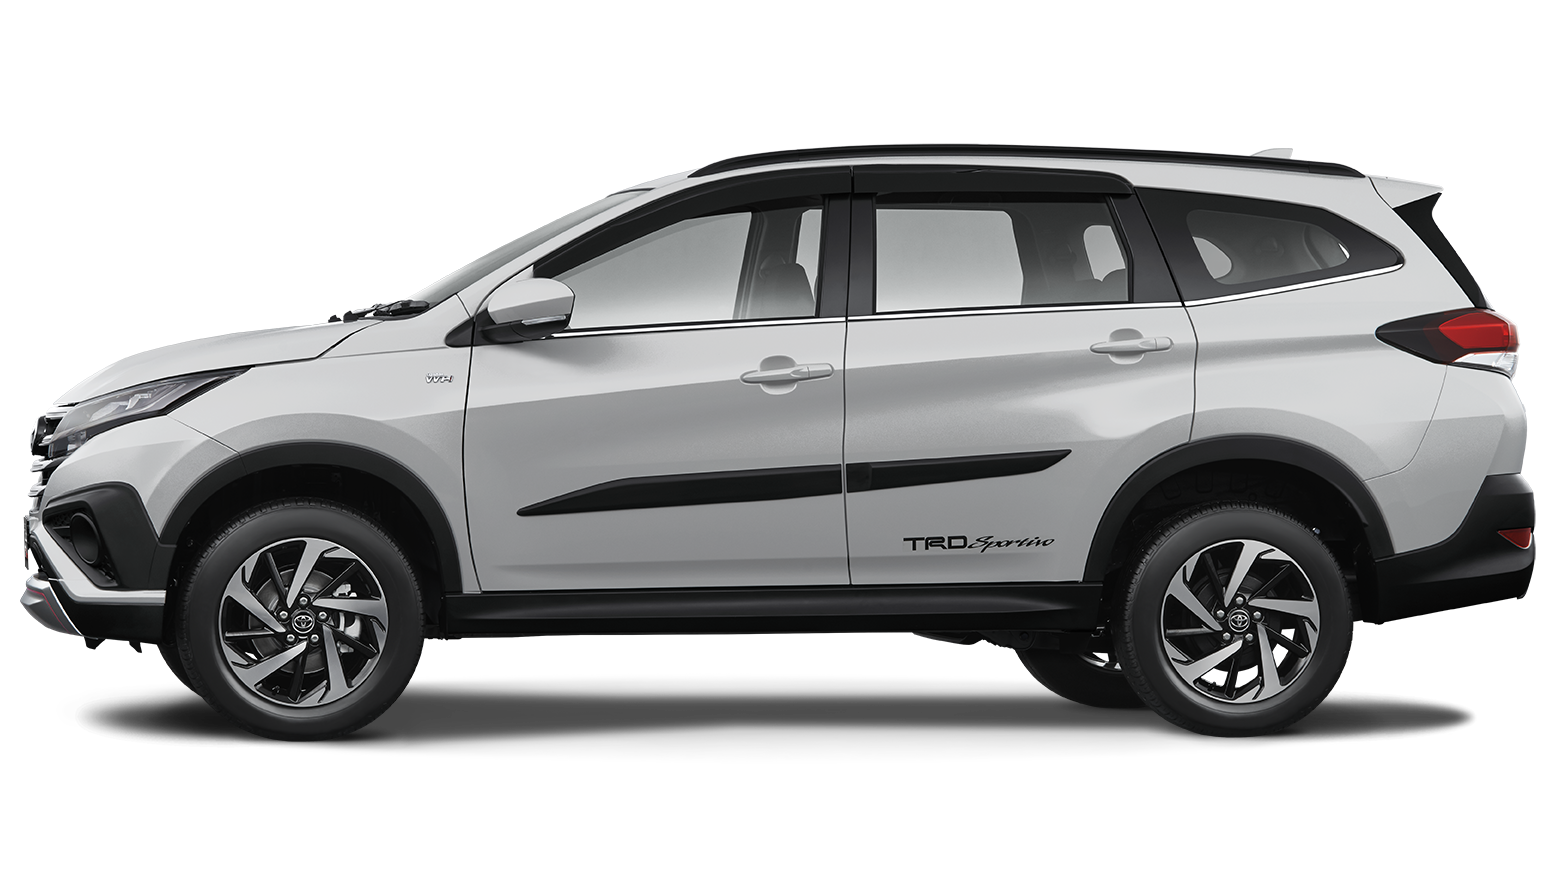 New 2018 Toyota Rush Suv Makes Debut In Indonesia Image 742830